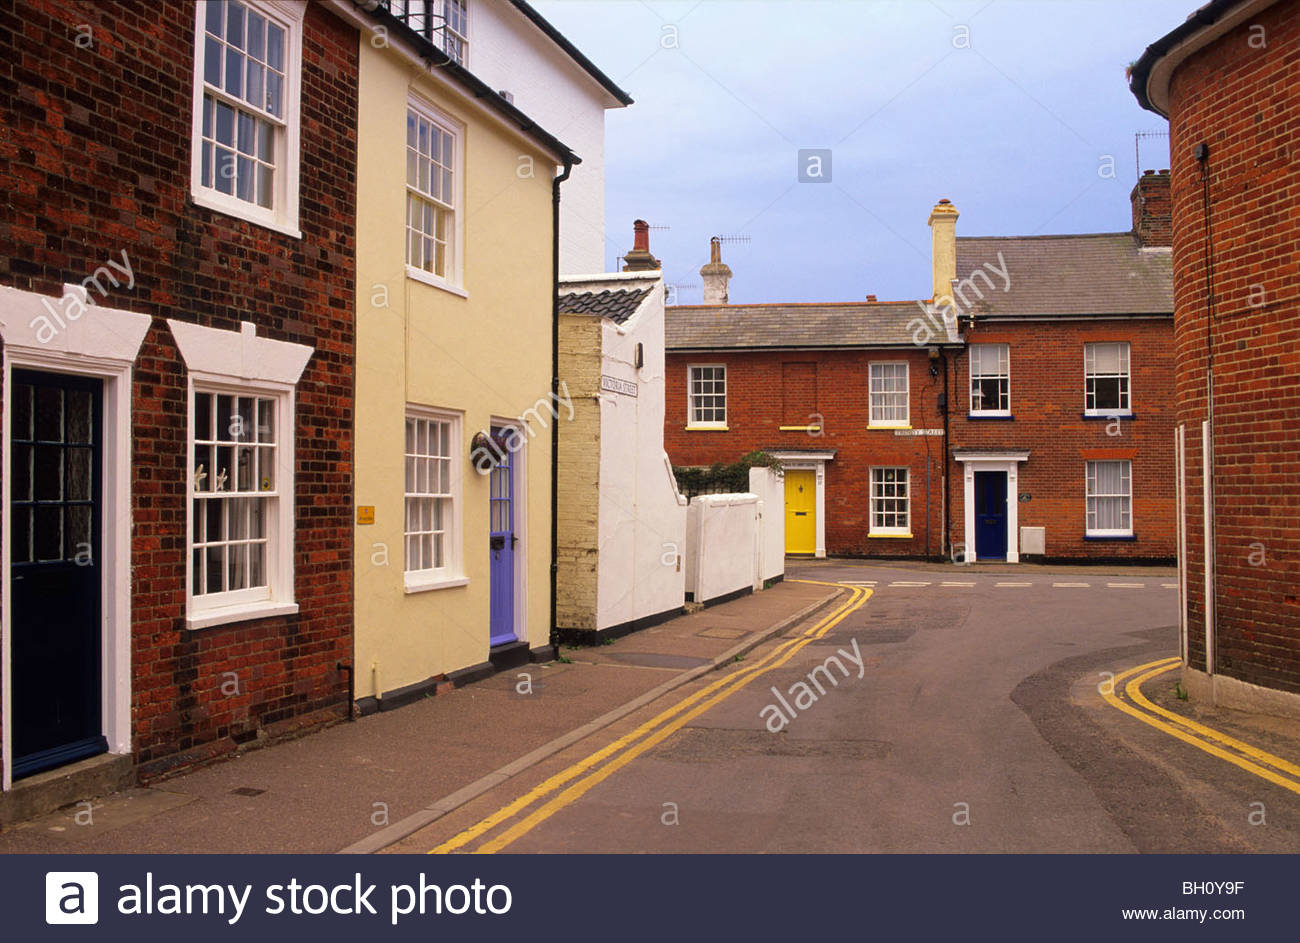 L'Europe, en Angleterre, dans le Suffolk, Southwold, East Anglia Photo Stock